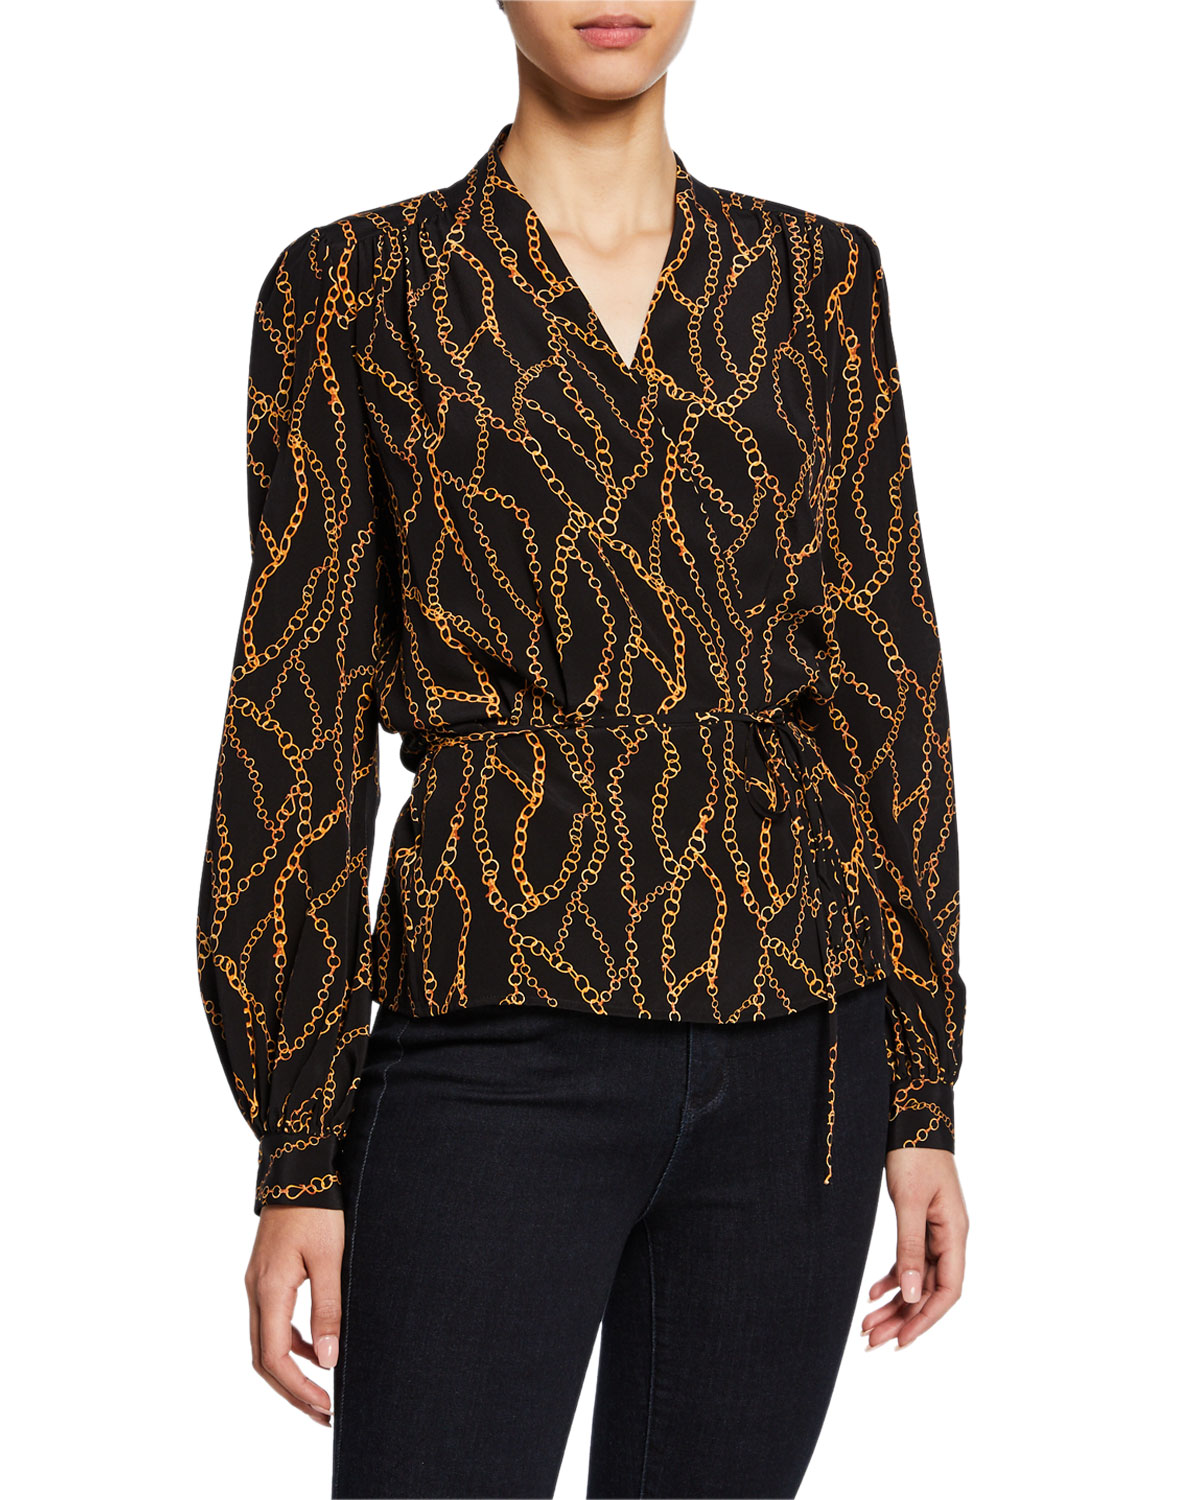 55010927091 Exact Product  Jennifer Lopez Black Patterned Print Shirt 2019